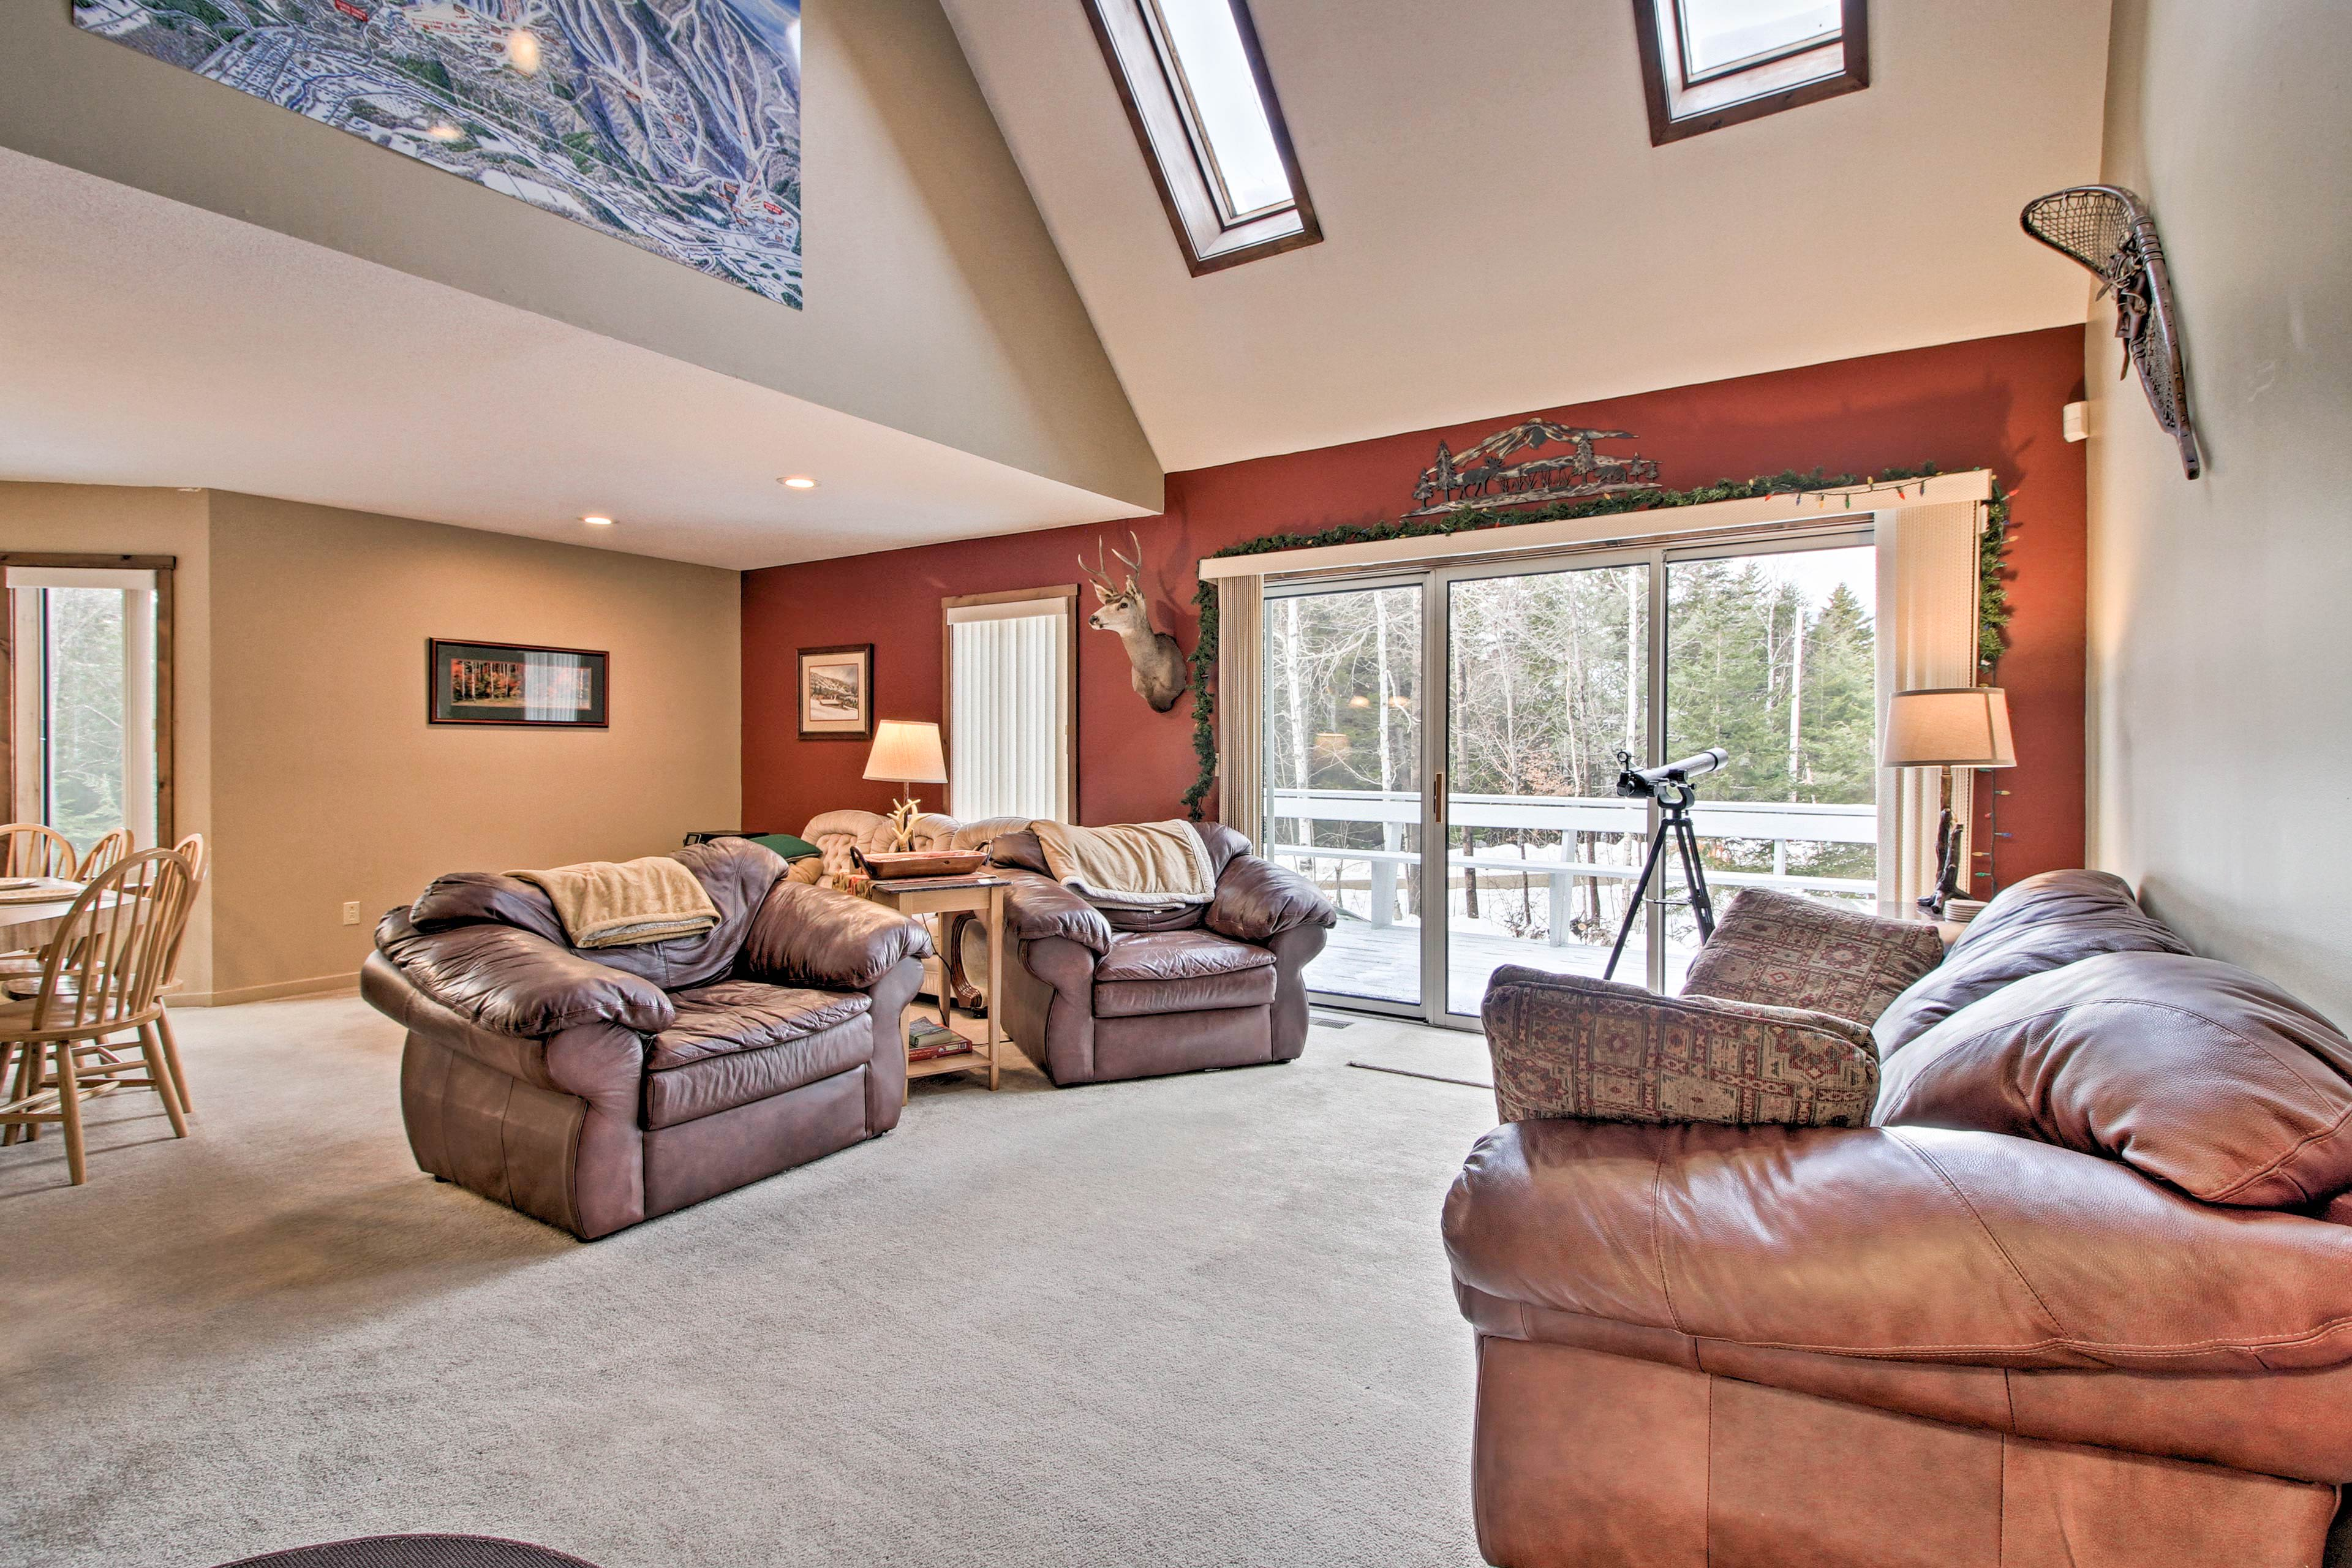 The spacious living room is complete with plush leather furniture.